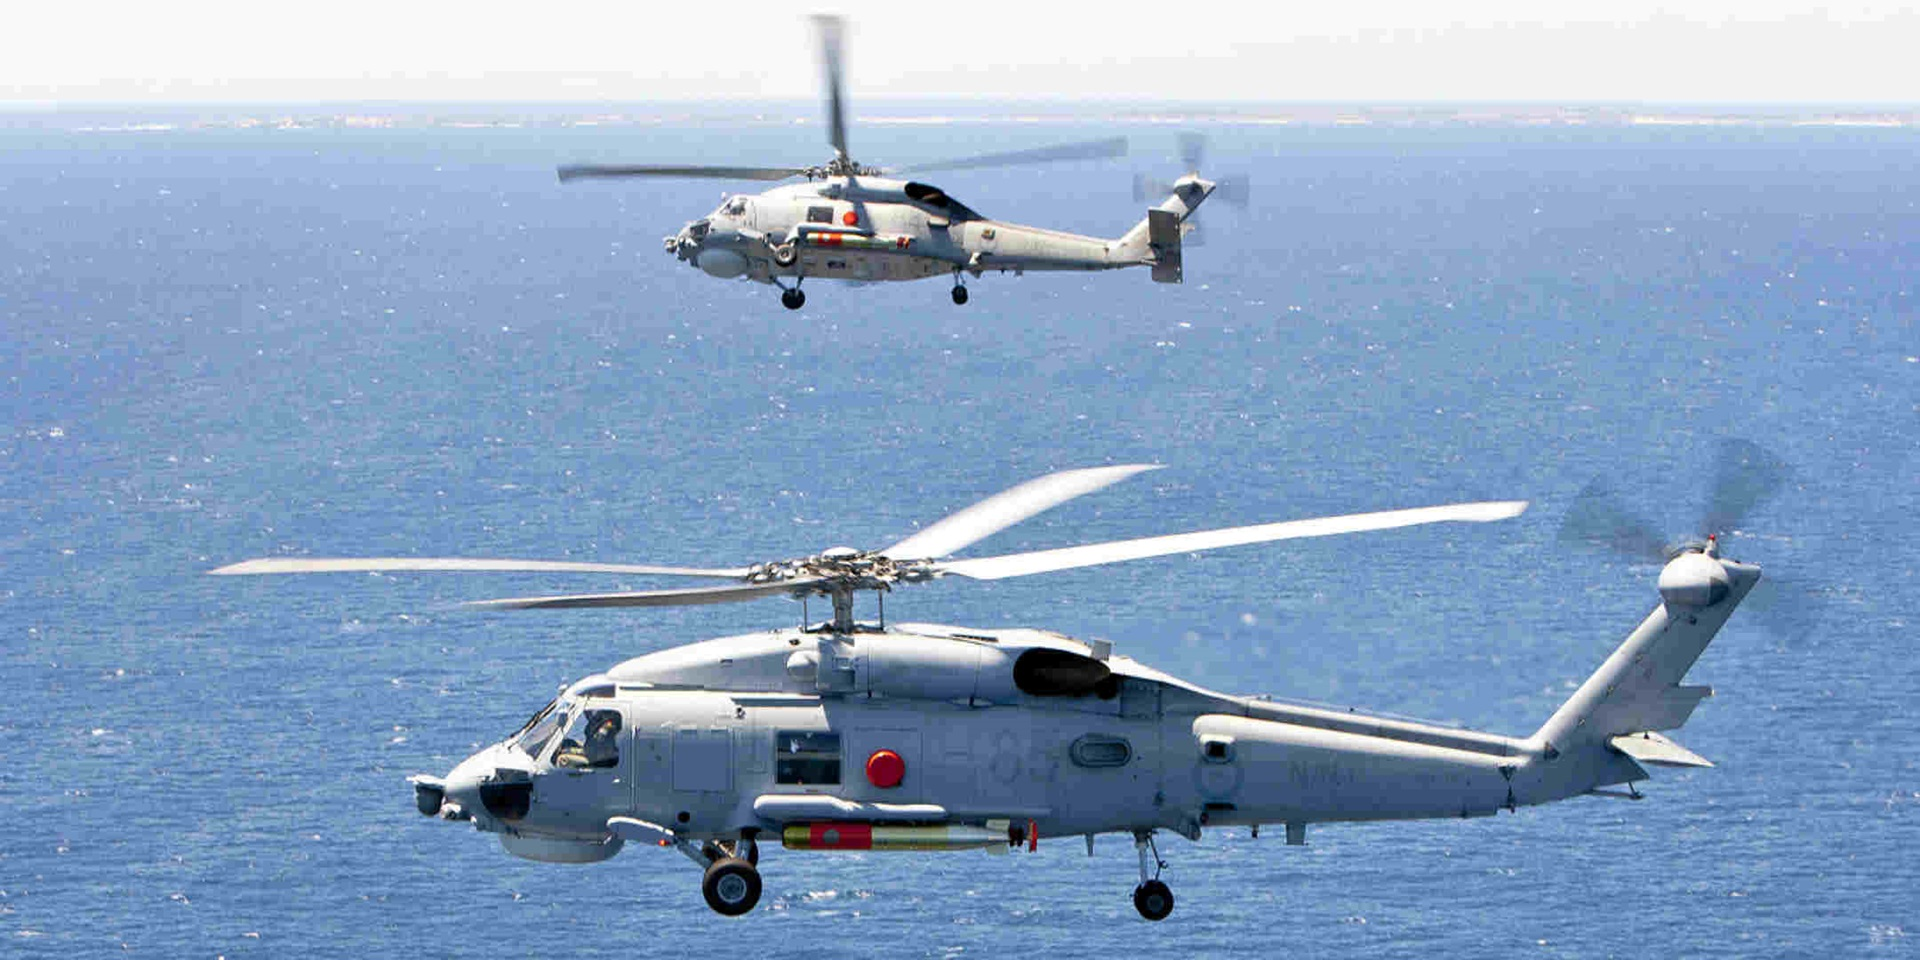 Seahawk helicopter in flight. Image: www.navy.gov.au